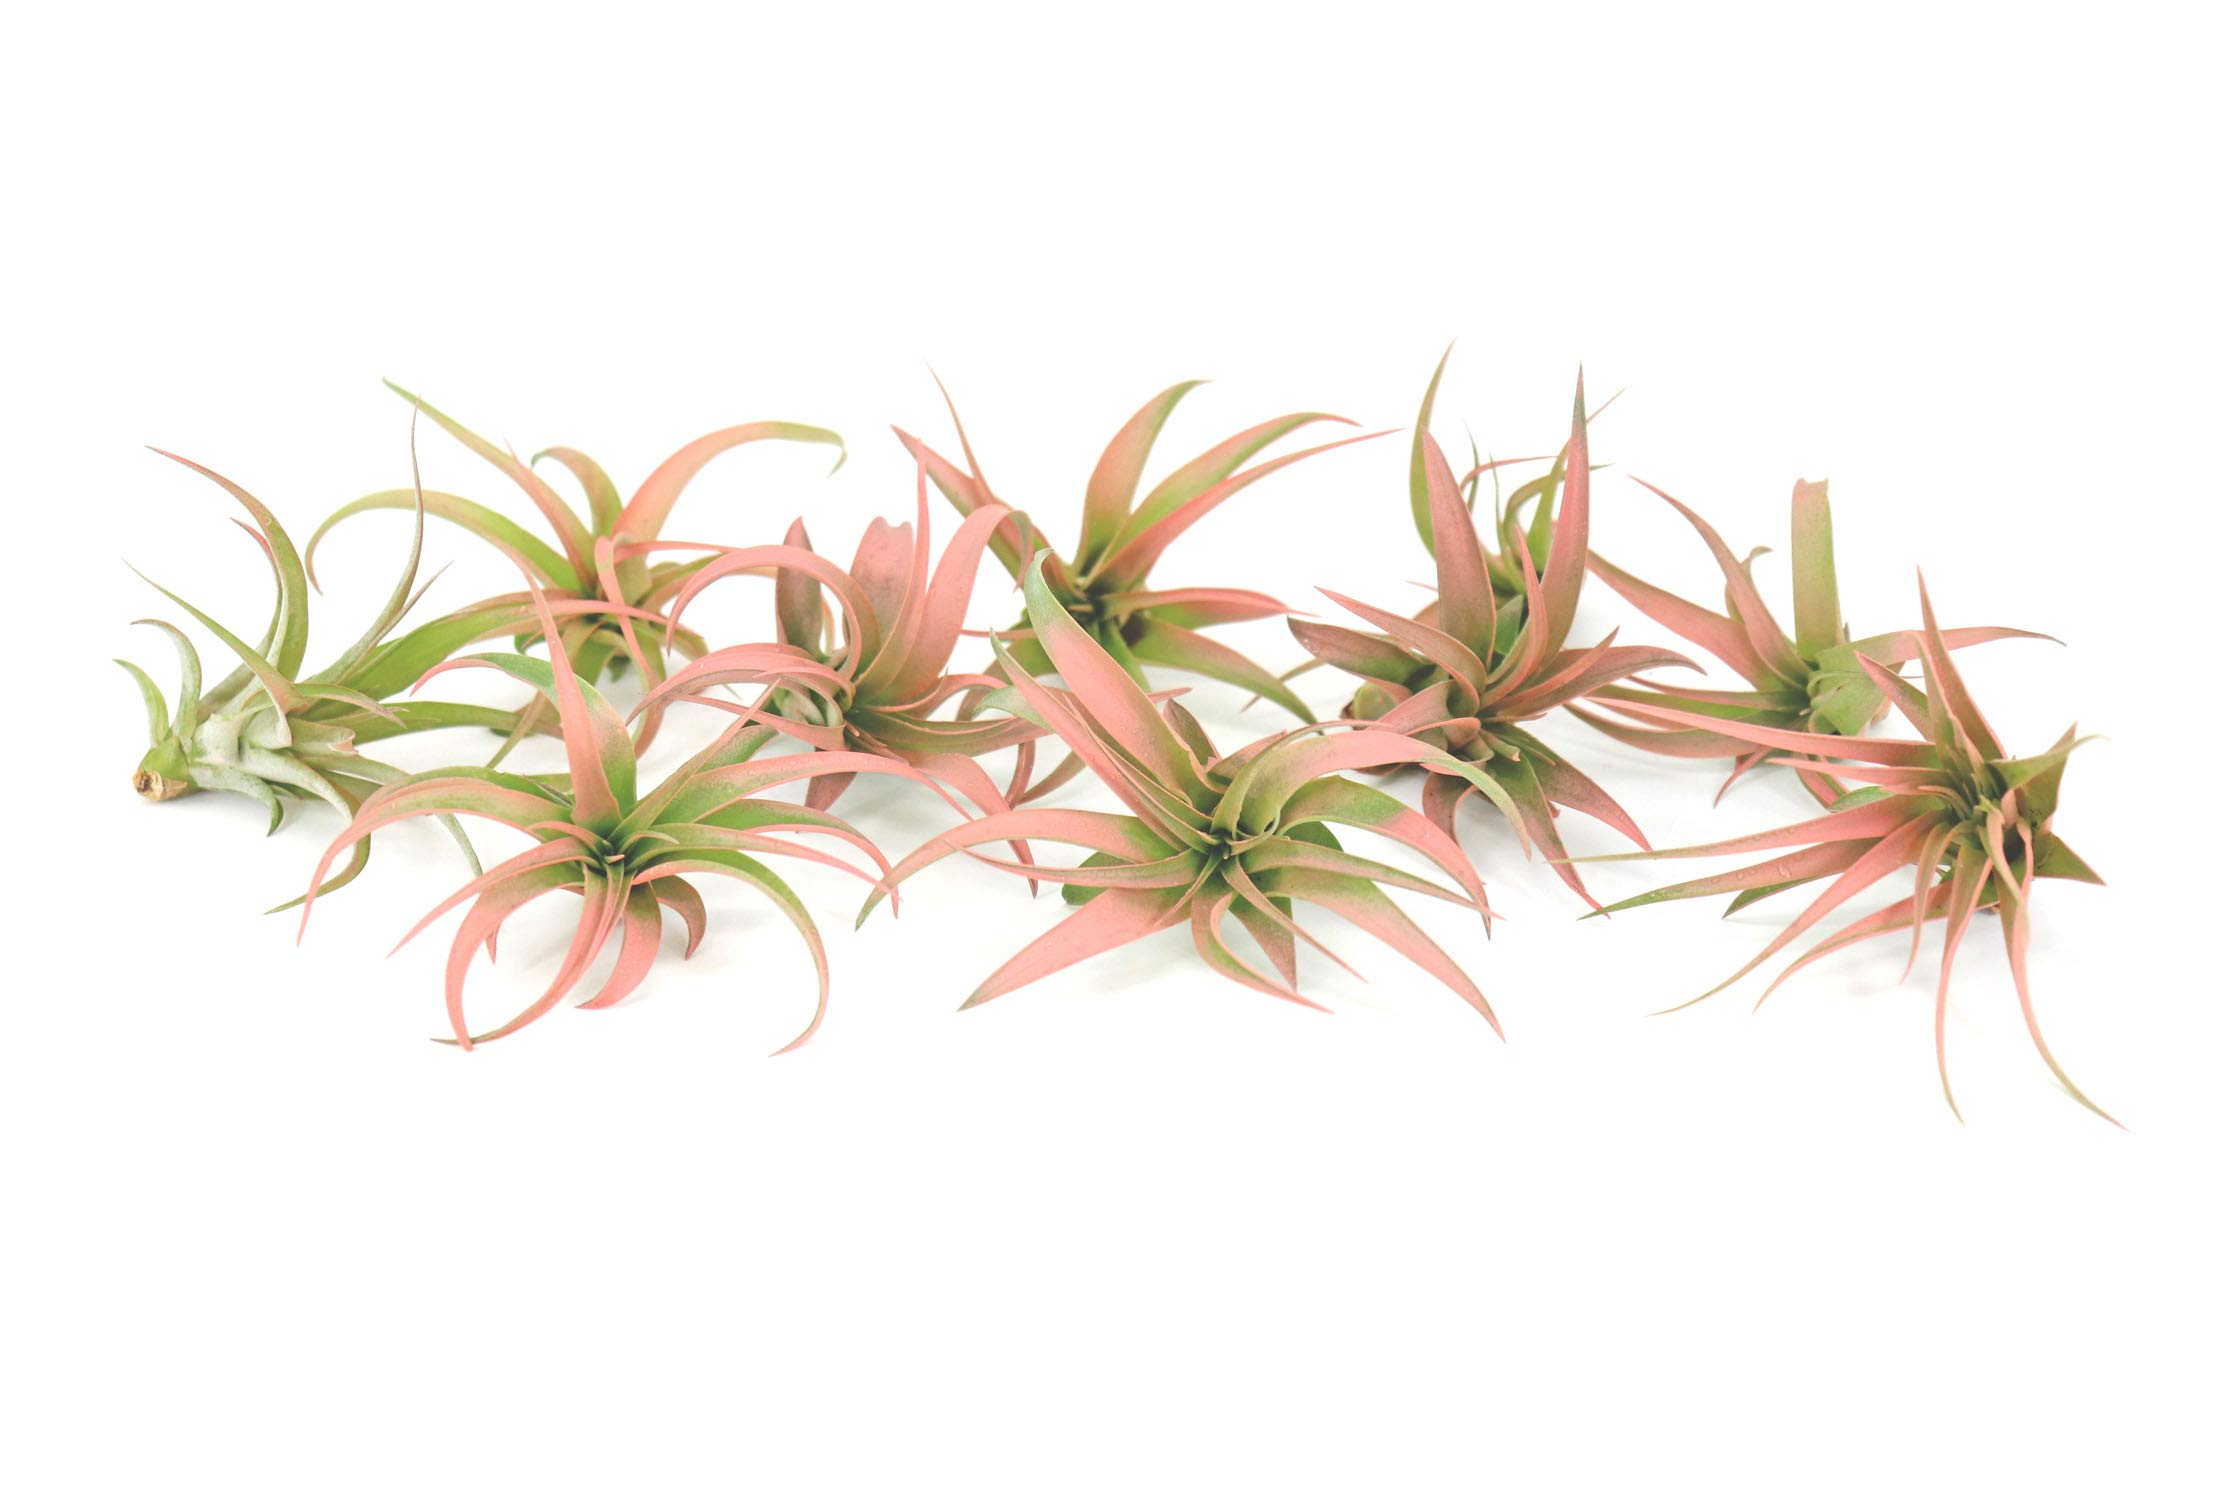 10 Live Air Plants | Colorful Peach Tillandsia Air Plant Pack | Real House Plants for Terrariums | Easy Indoor Airplant Decorations by Plants for Pets